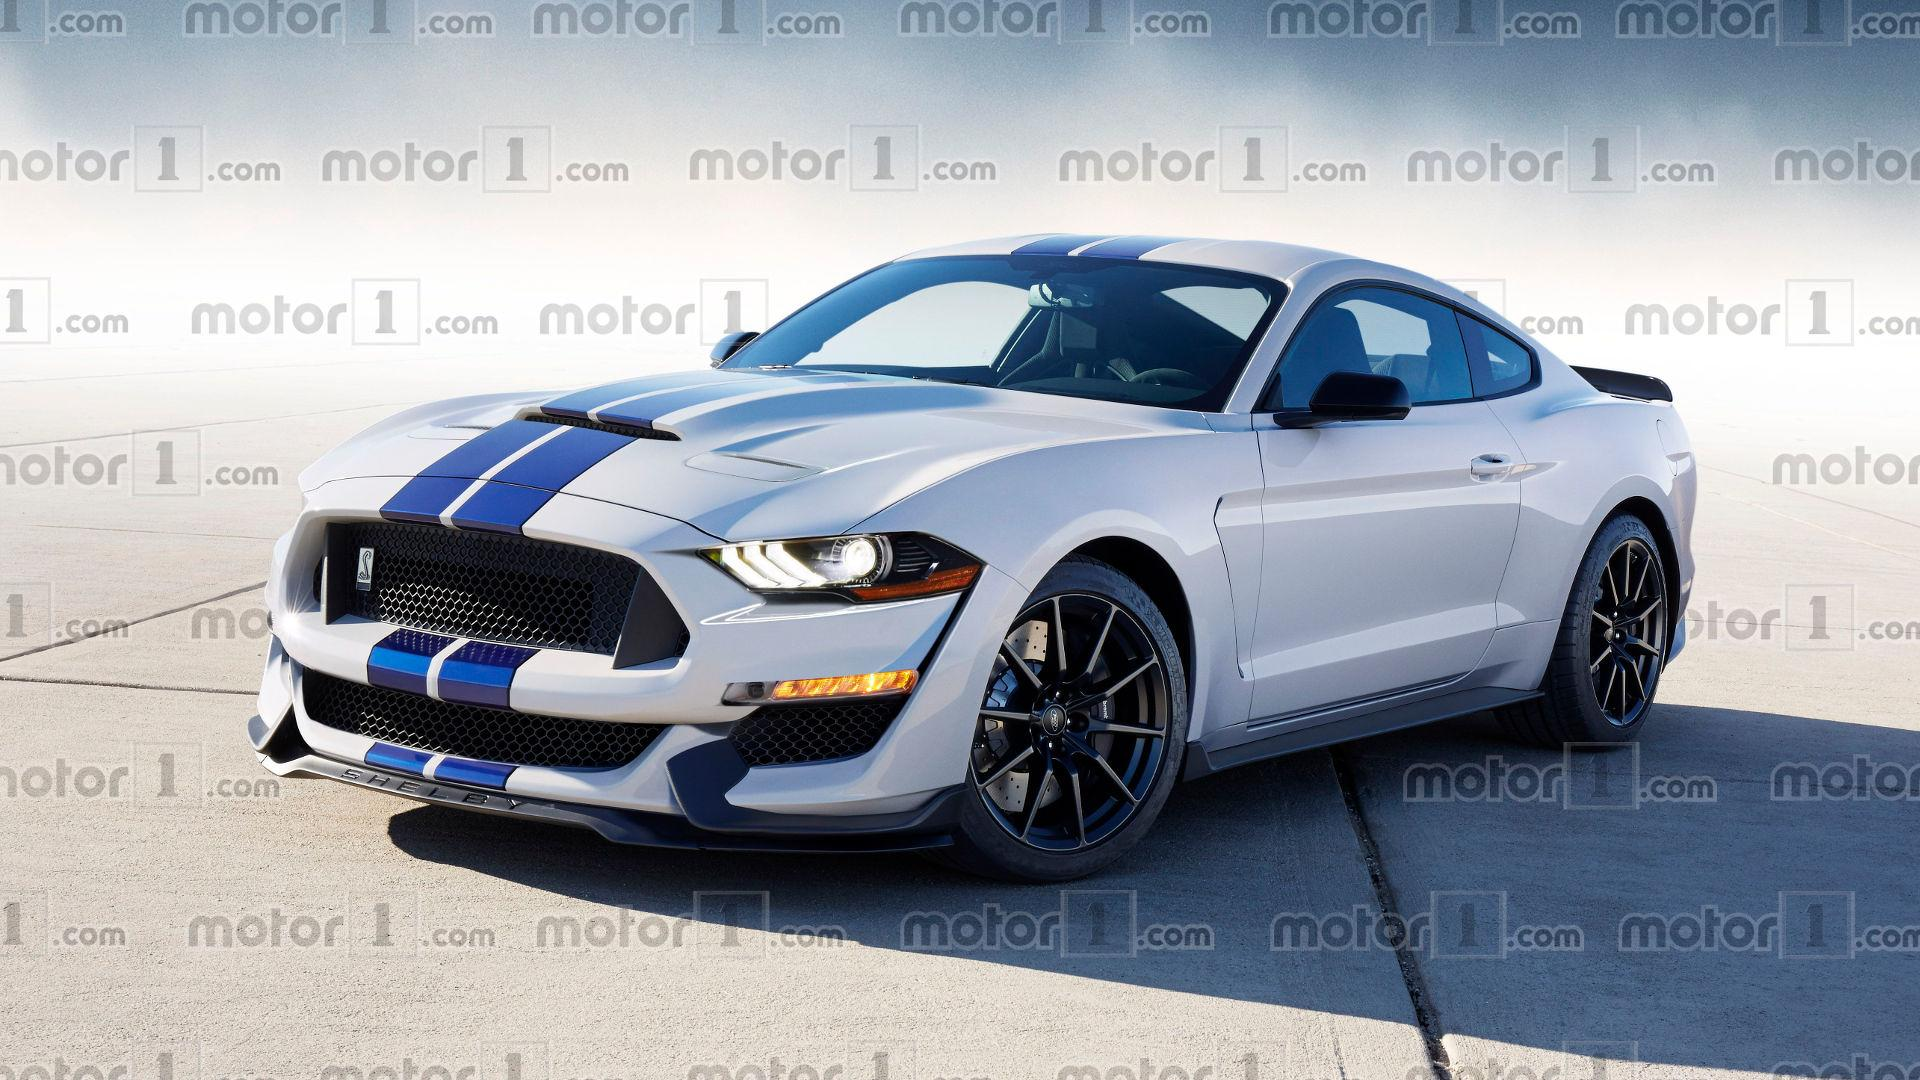 2019 ford mustang shelby gt500 looks aggressive in new. Black Bedroom Furniture Sets. Home Design Ideas